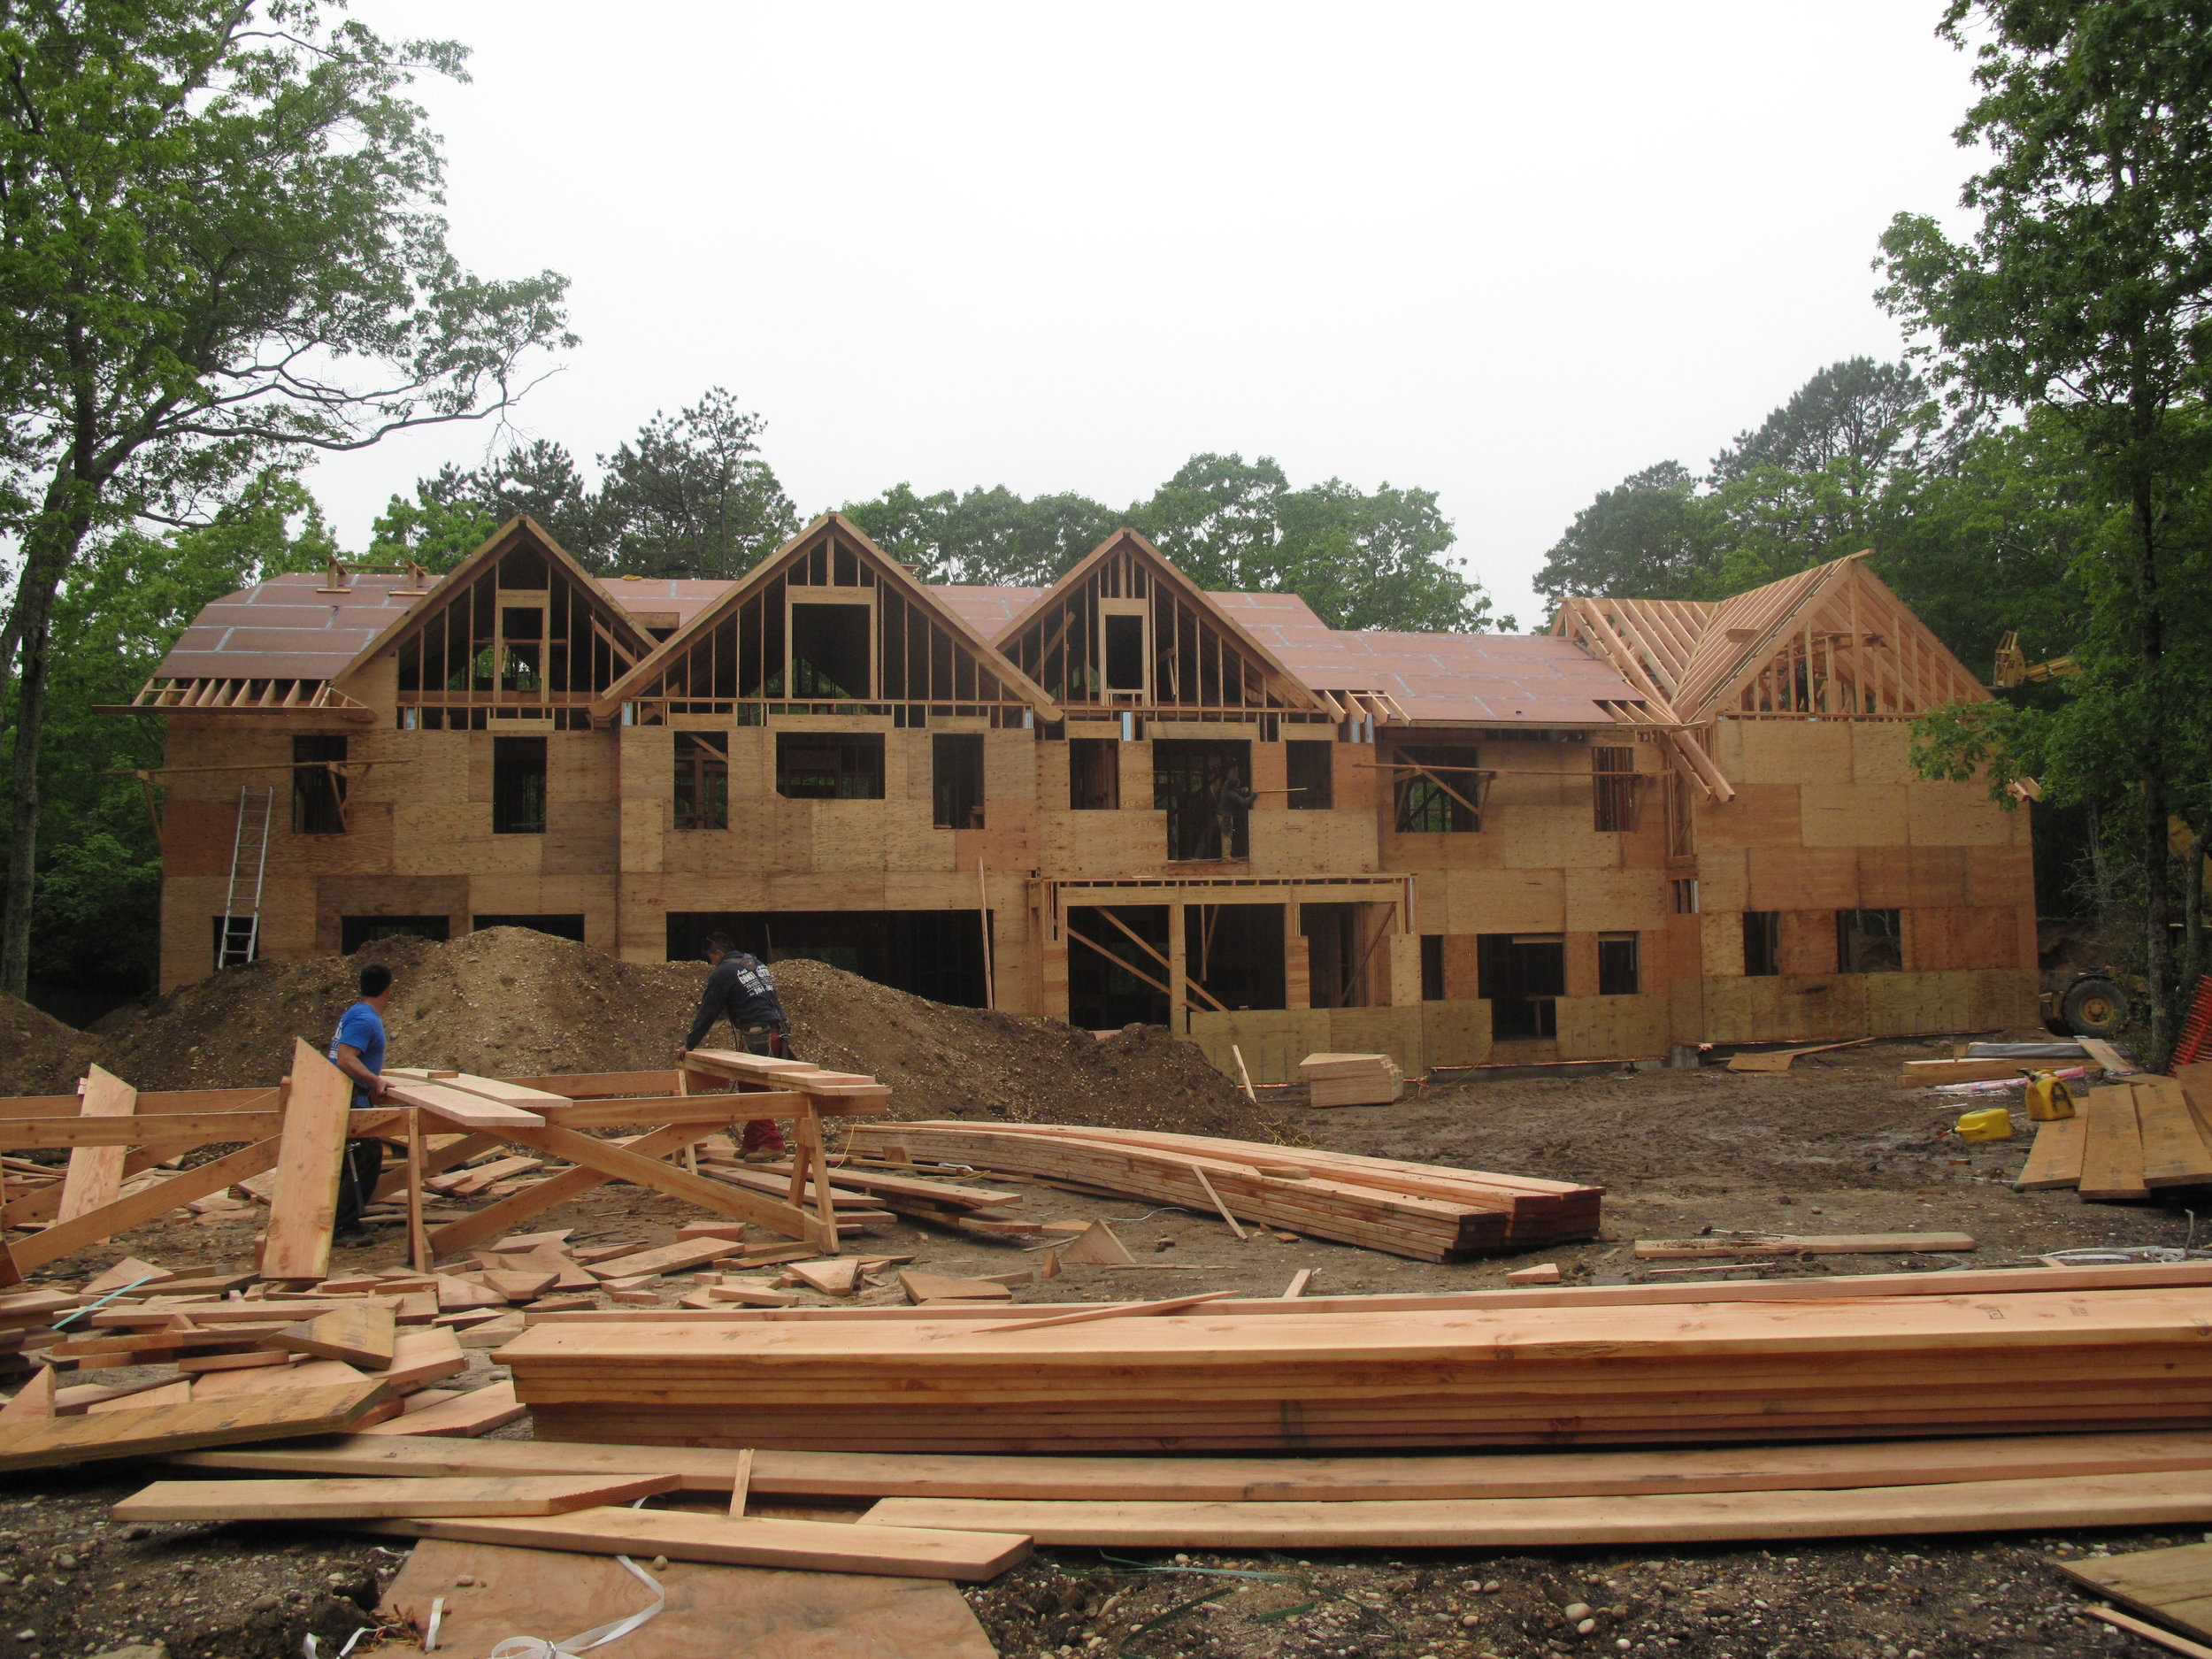 Roof going up on this Watermill residence. Seeing lots of progress very quickly.